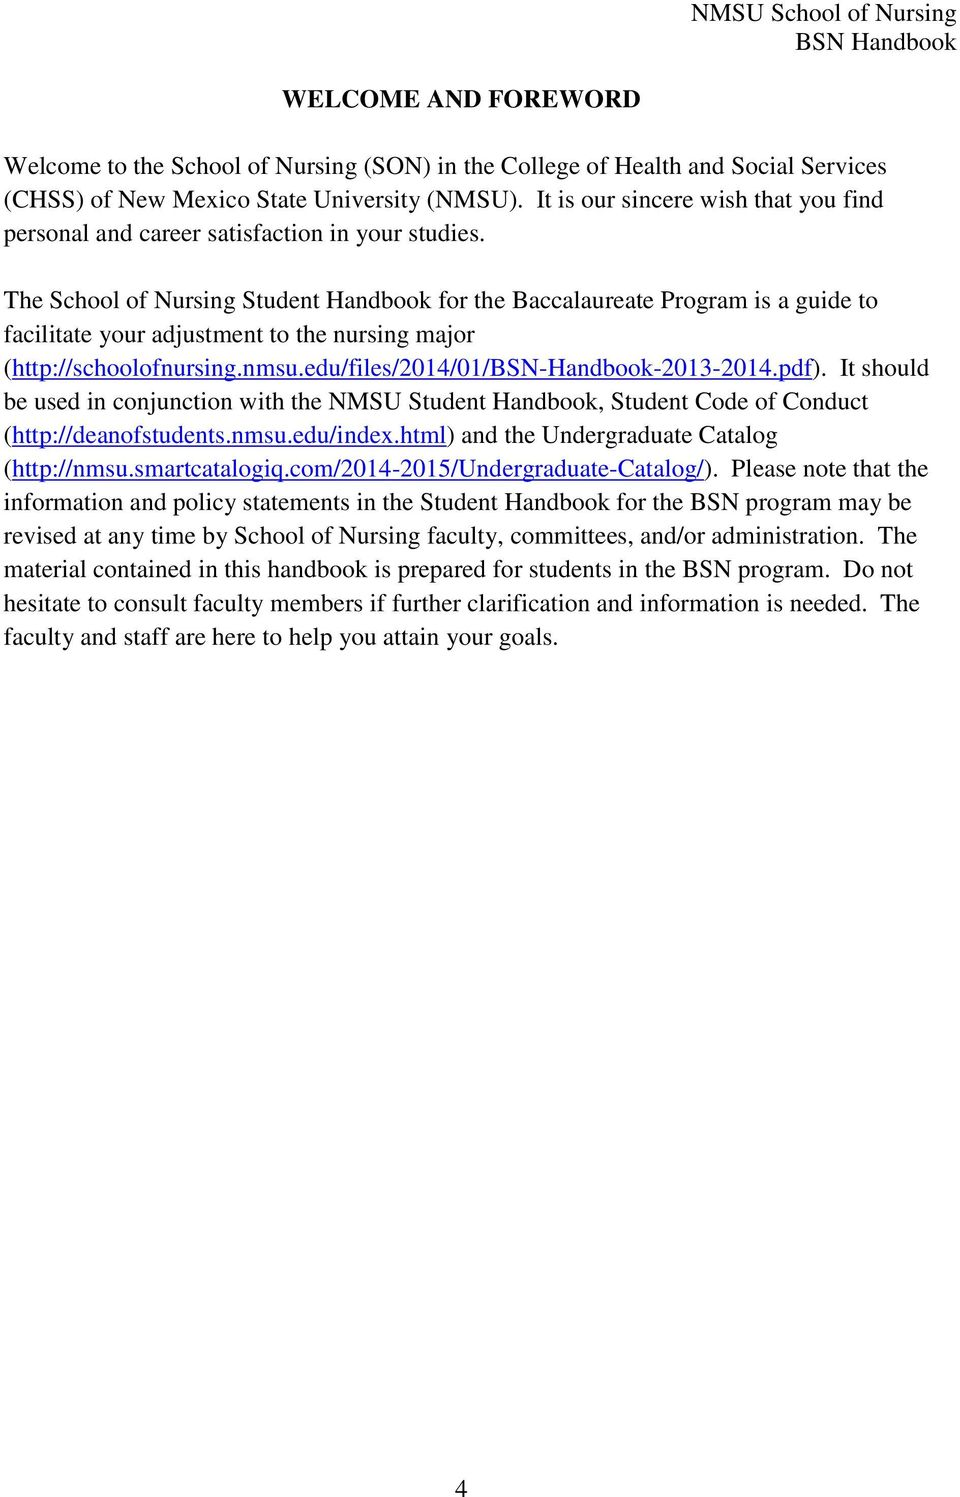 The School of Nursing Student Handbook for the Baccalaureate Program is a guide to facilitate your adjustment to the nursing major (http://schoolofnursing.nmsu.